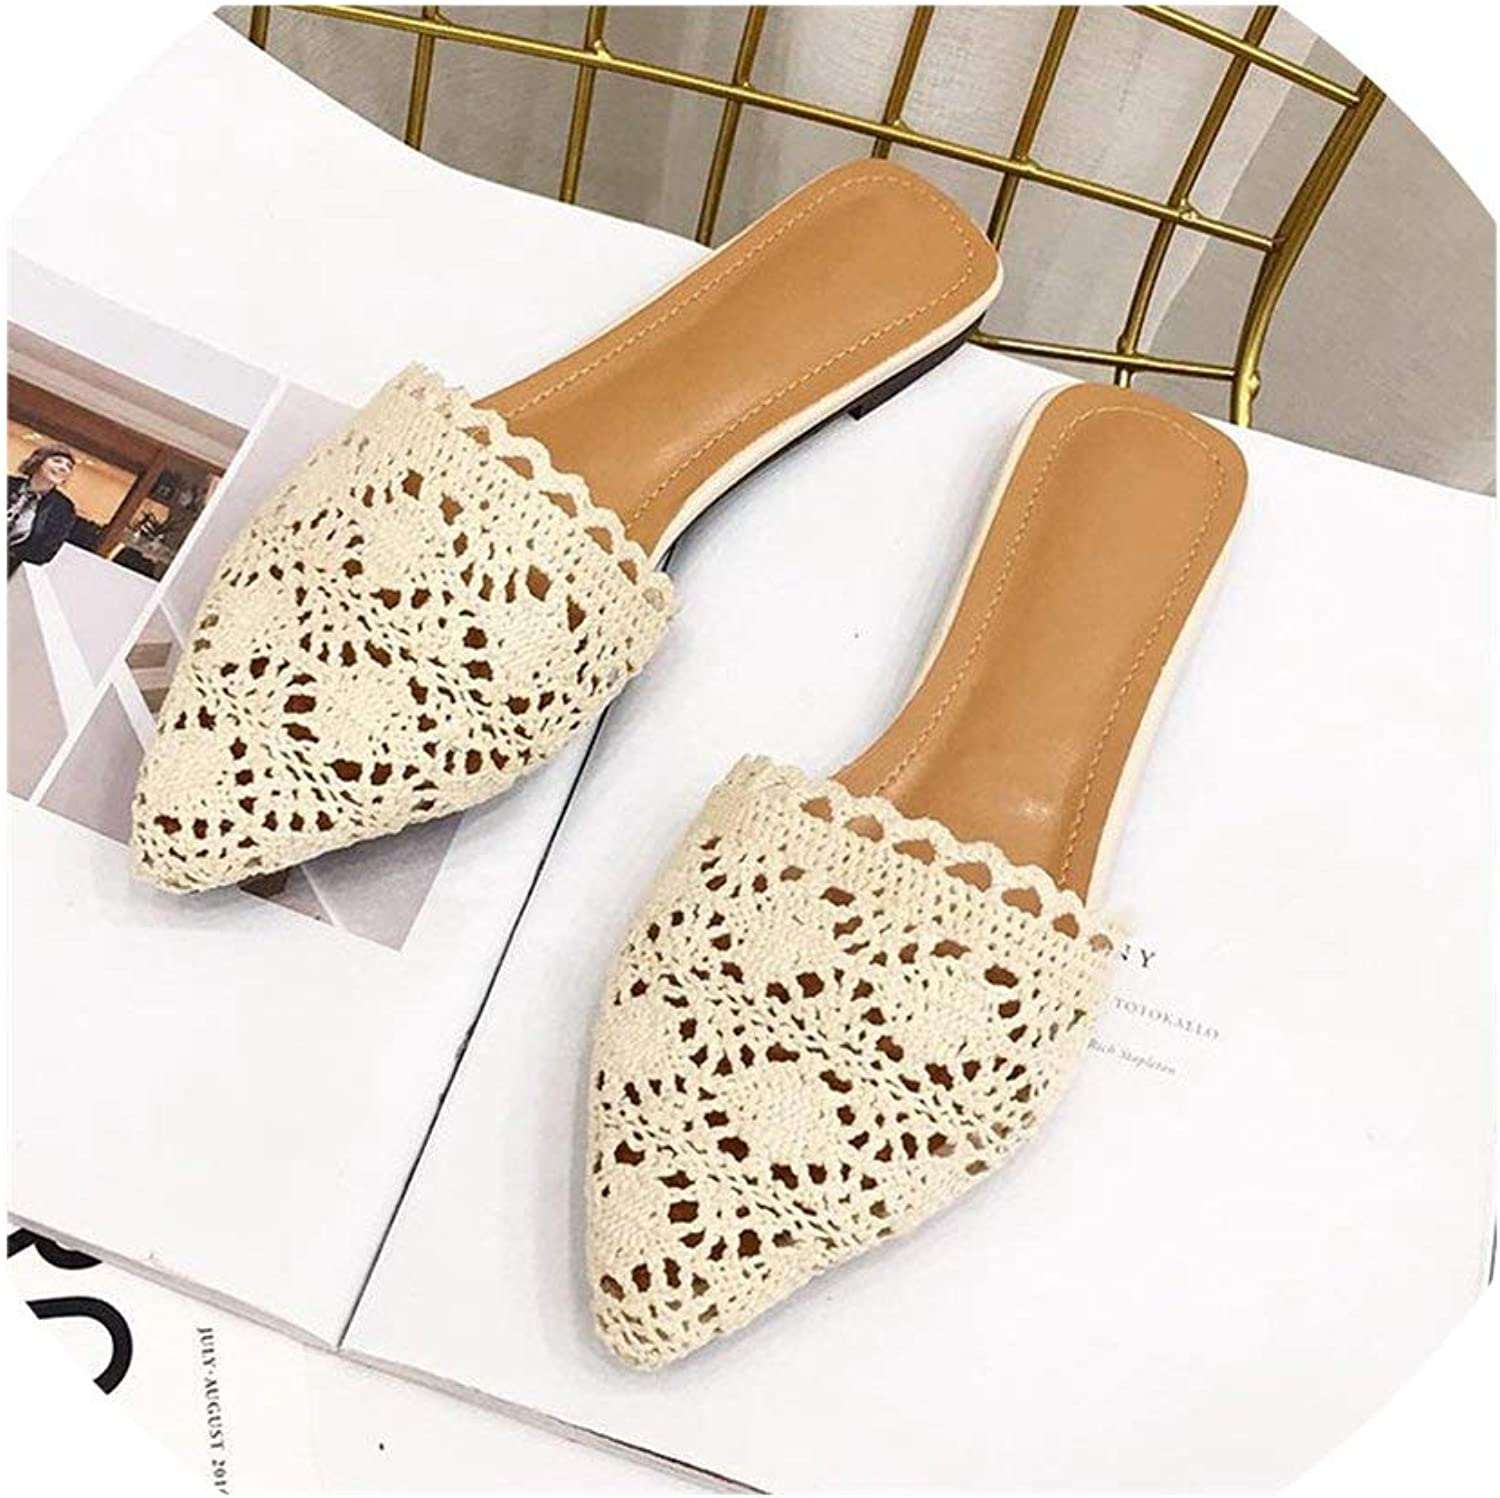 HuaHua-Store Lace Pointed Toe Flat Slides Closed Toe Mules shoes Women Slippers Outside Sandals